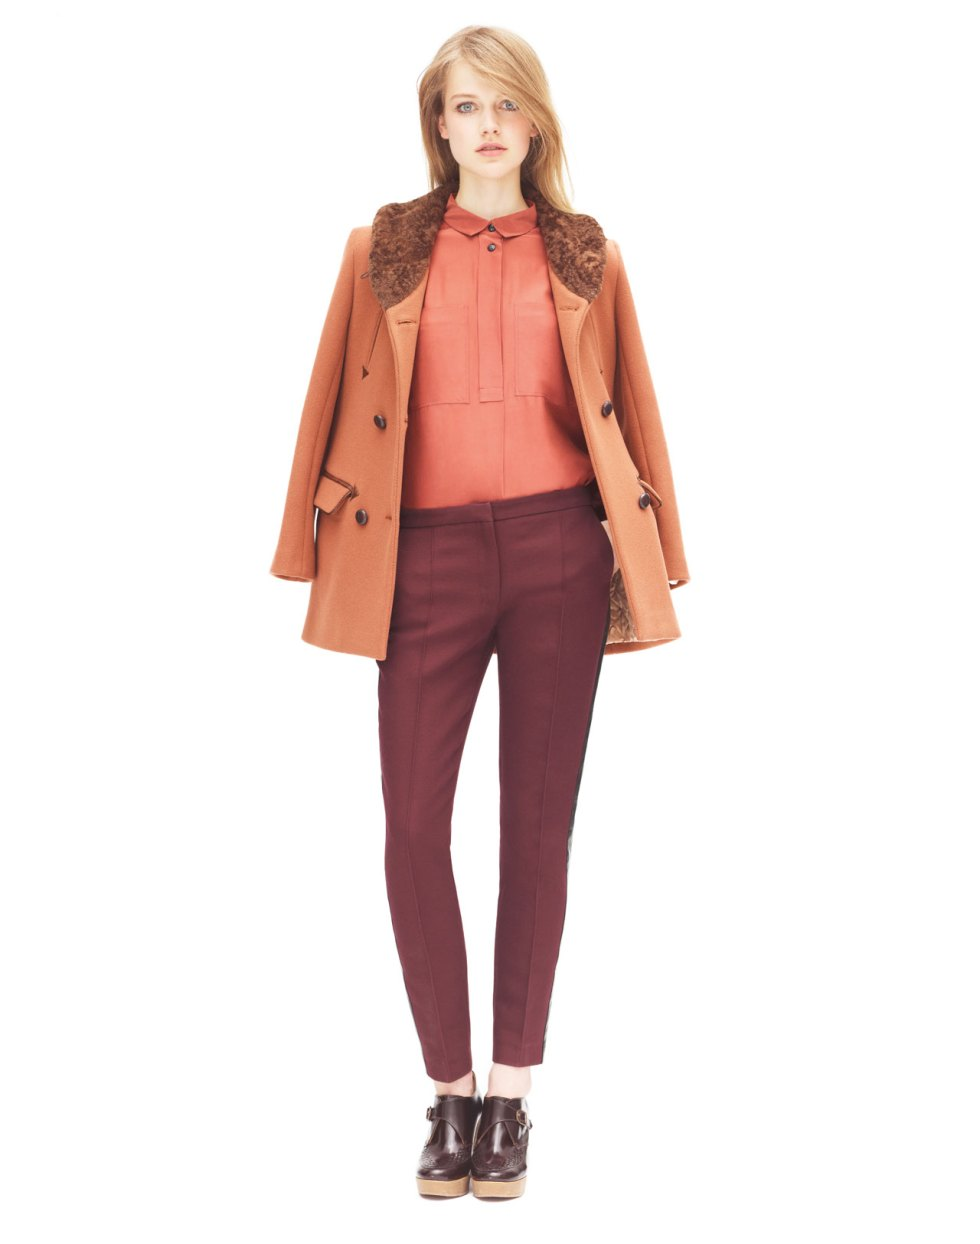 Sandro Collection - Women's Designer Clothing - Womens ...